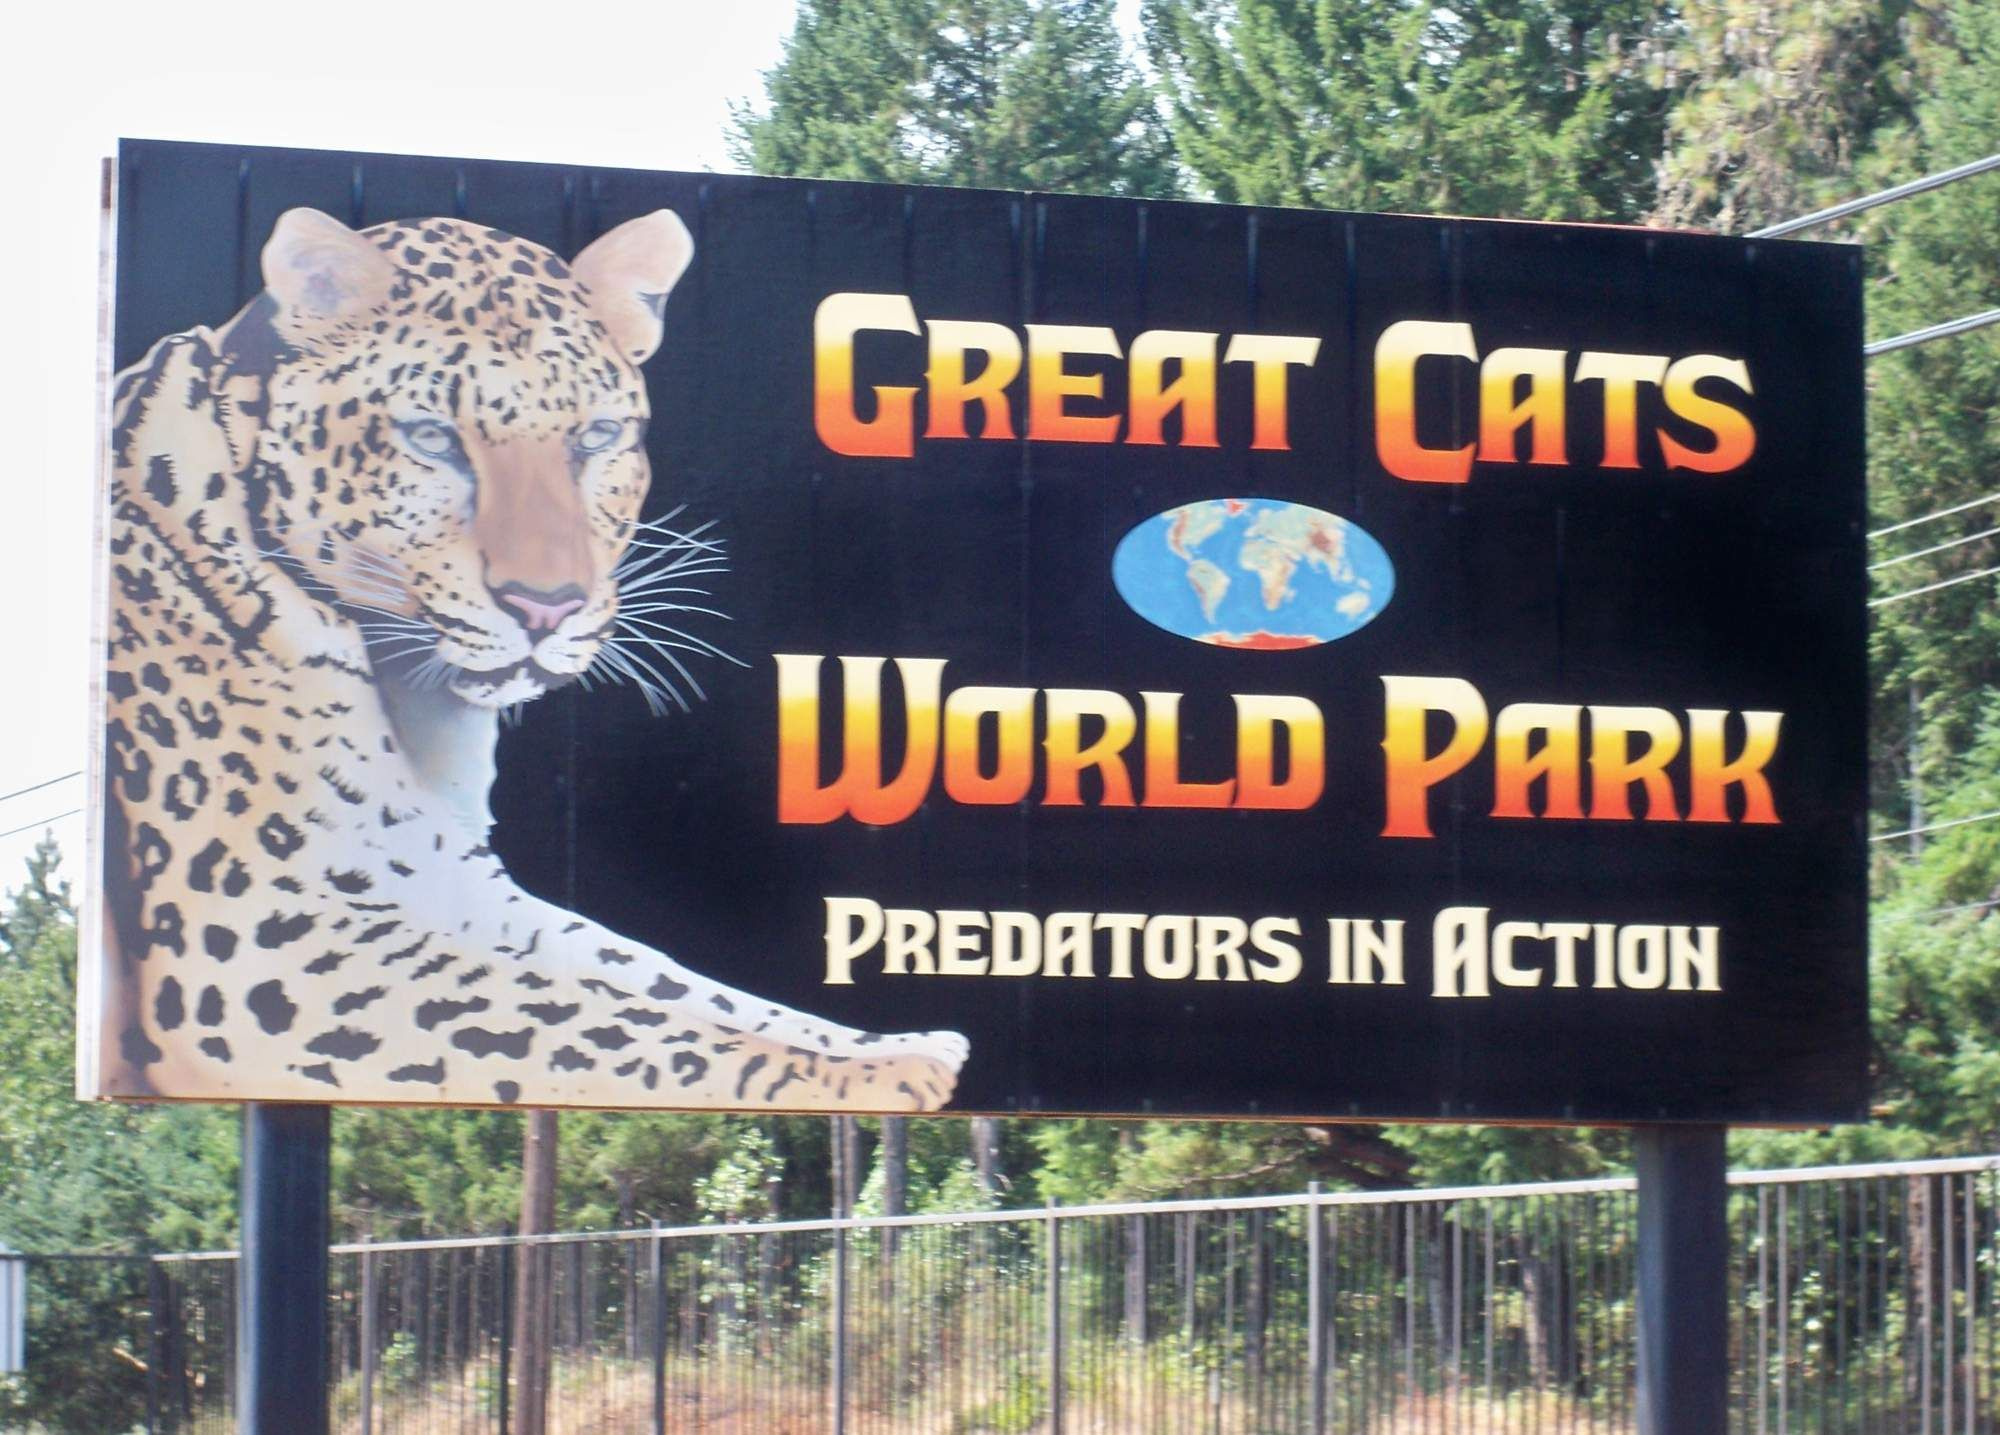 Tiger breaks keeper's arm at Cave Junction Great Cats of the World owned by Craig Wagner